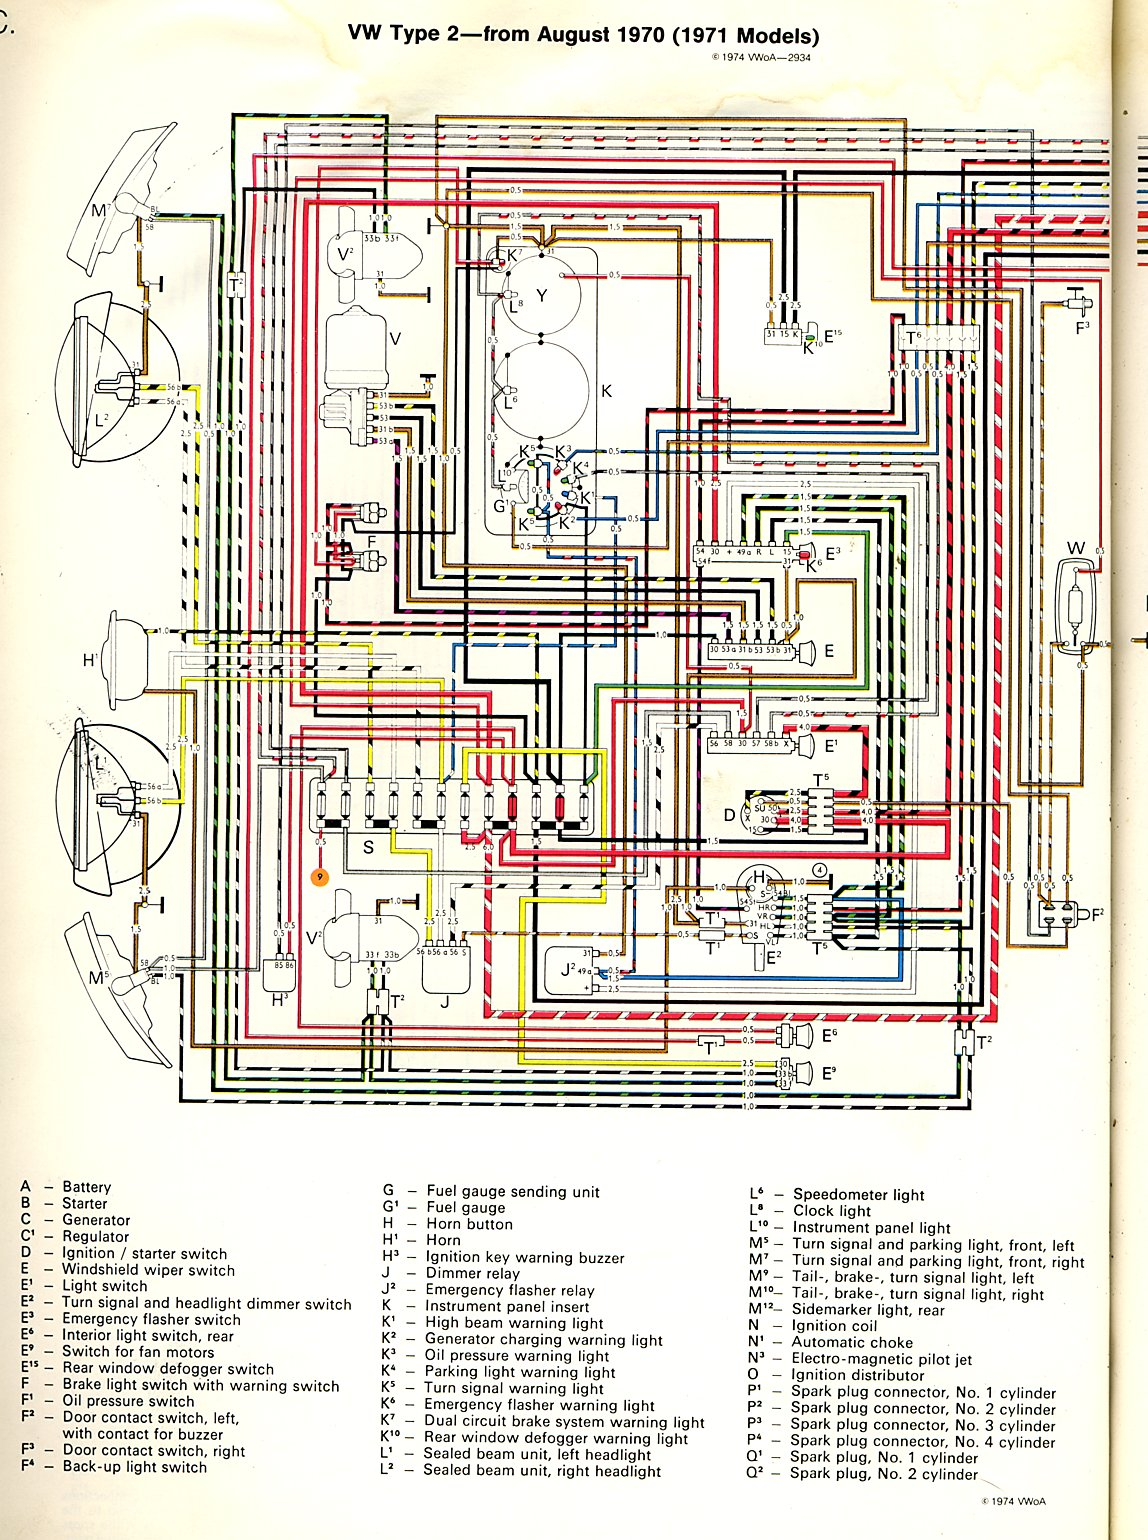 baybus_71a 1971 bus wiring diagram thegoldenbug com bus wiring diagrams at eliteediting.co